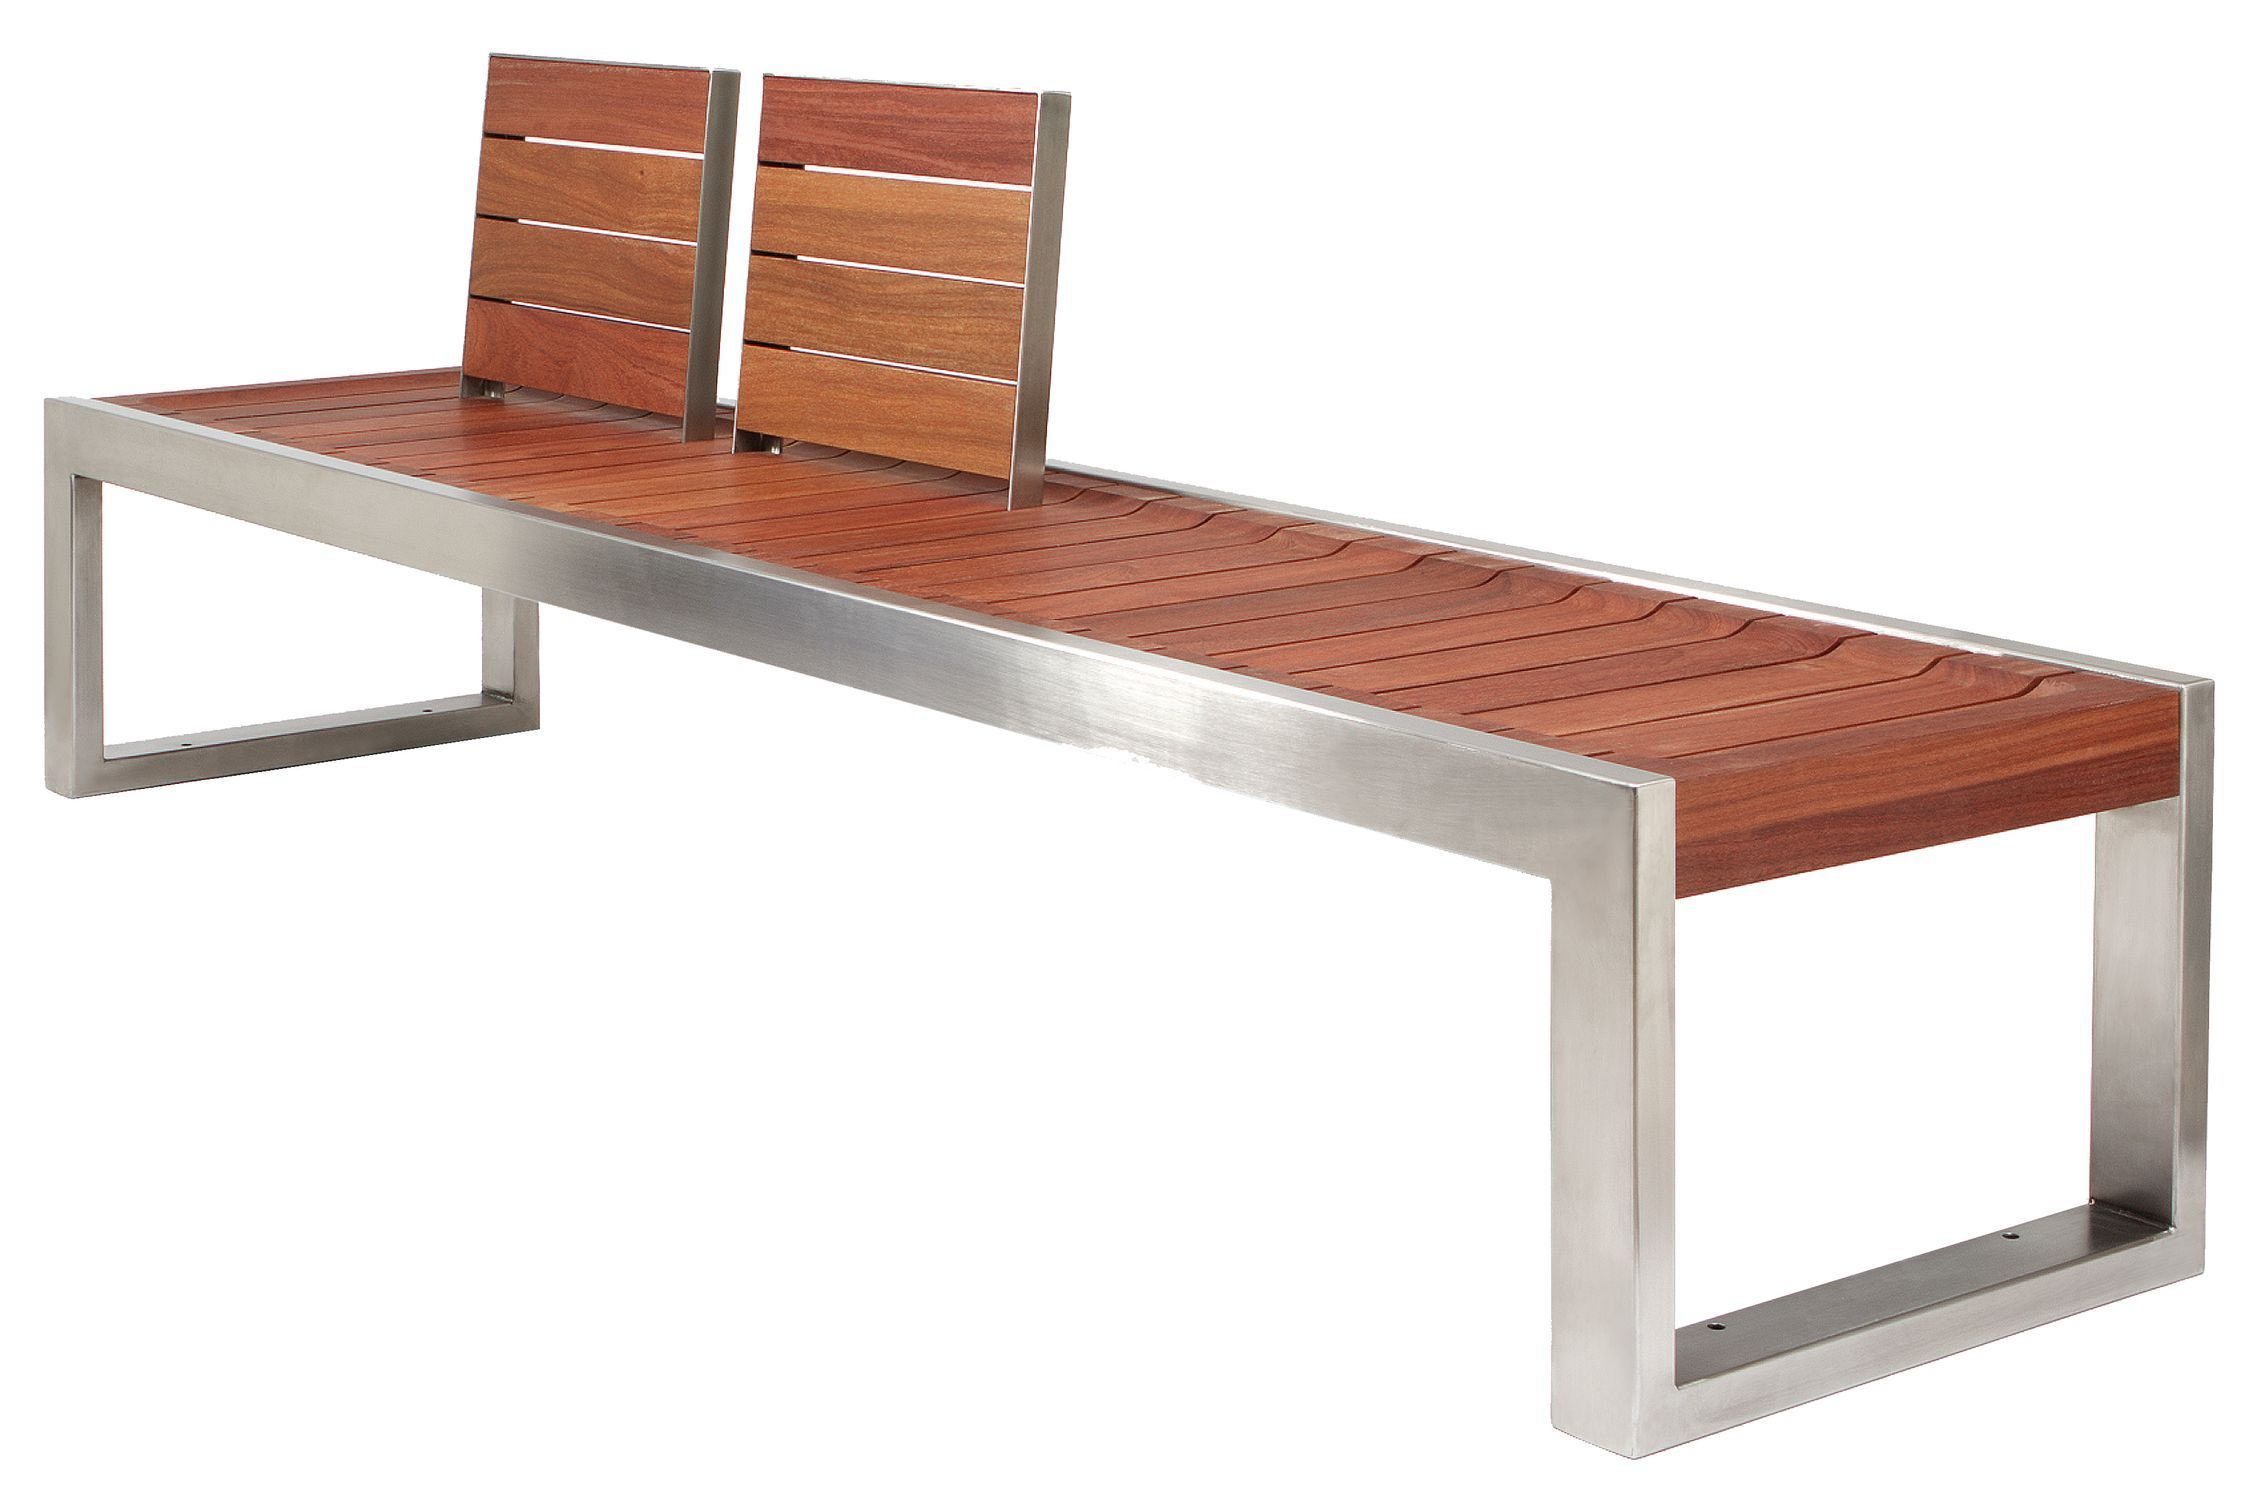 Unique Design For Modern Wooden Bench Combined With Stainless Rectangle Frame And Legs As Well Cadeiras De Madeira Mobiliario Industrial Banquinhos De Madeira